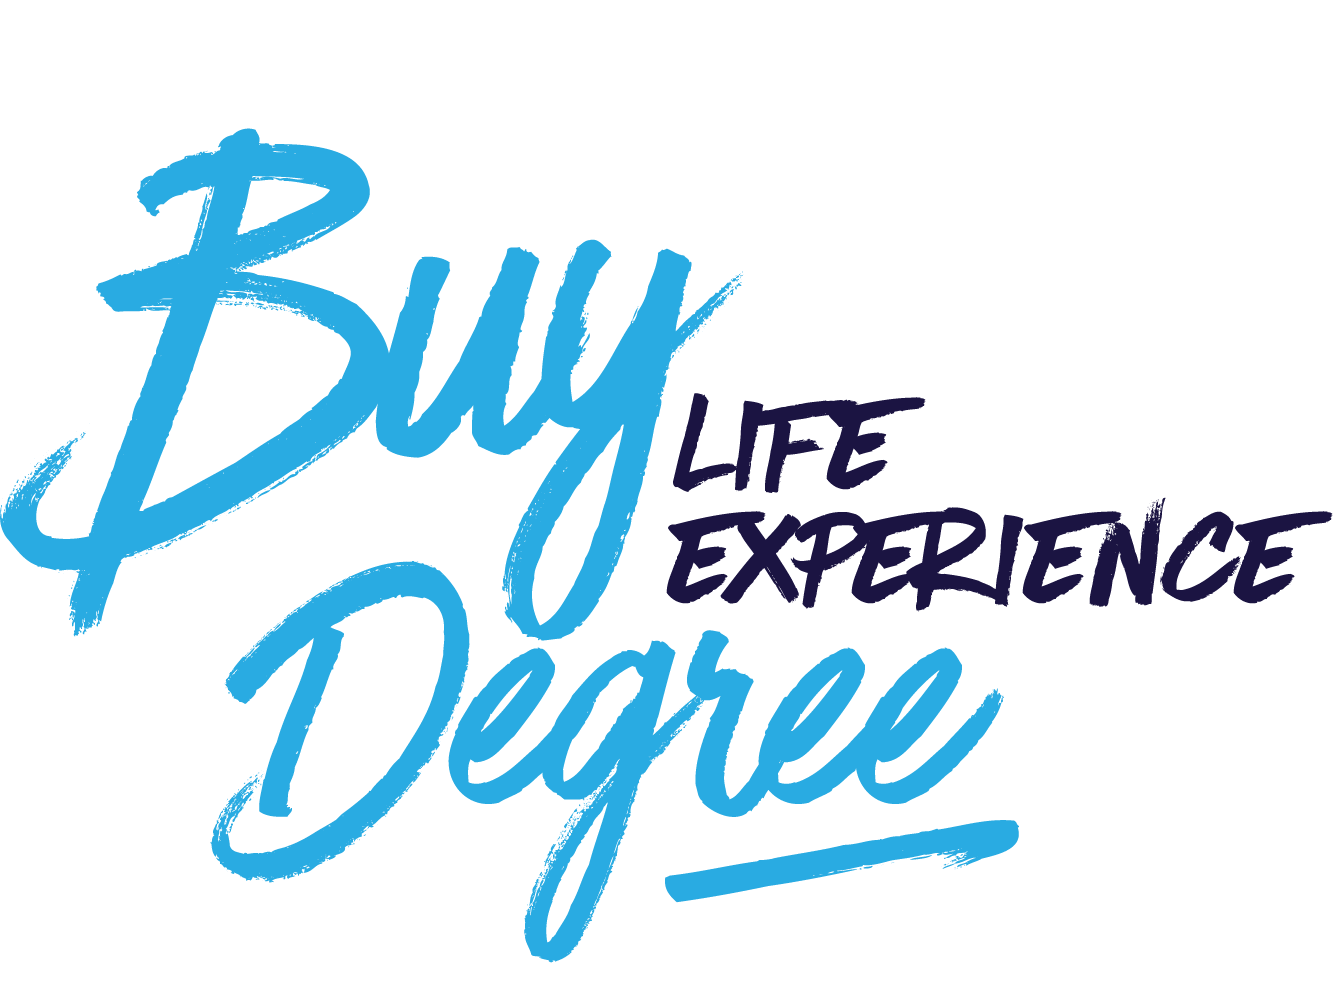 Buy Life Experience Degree